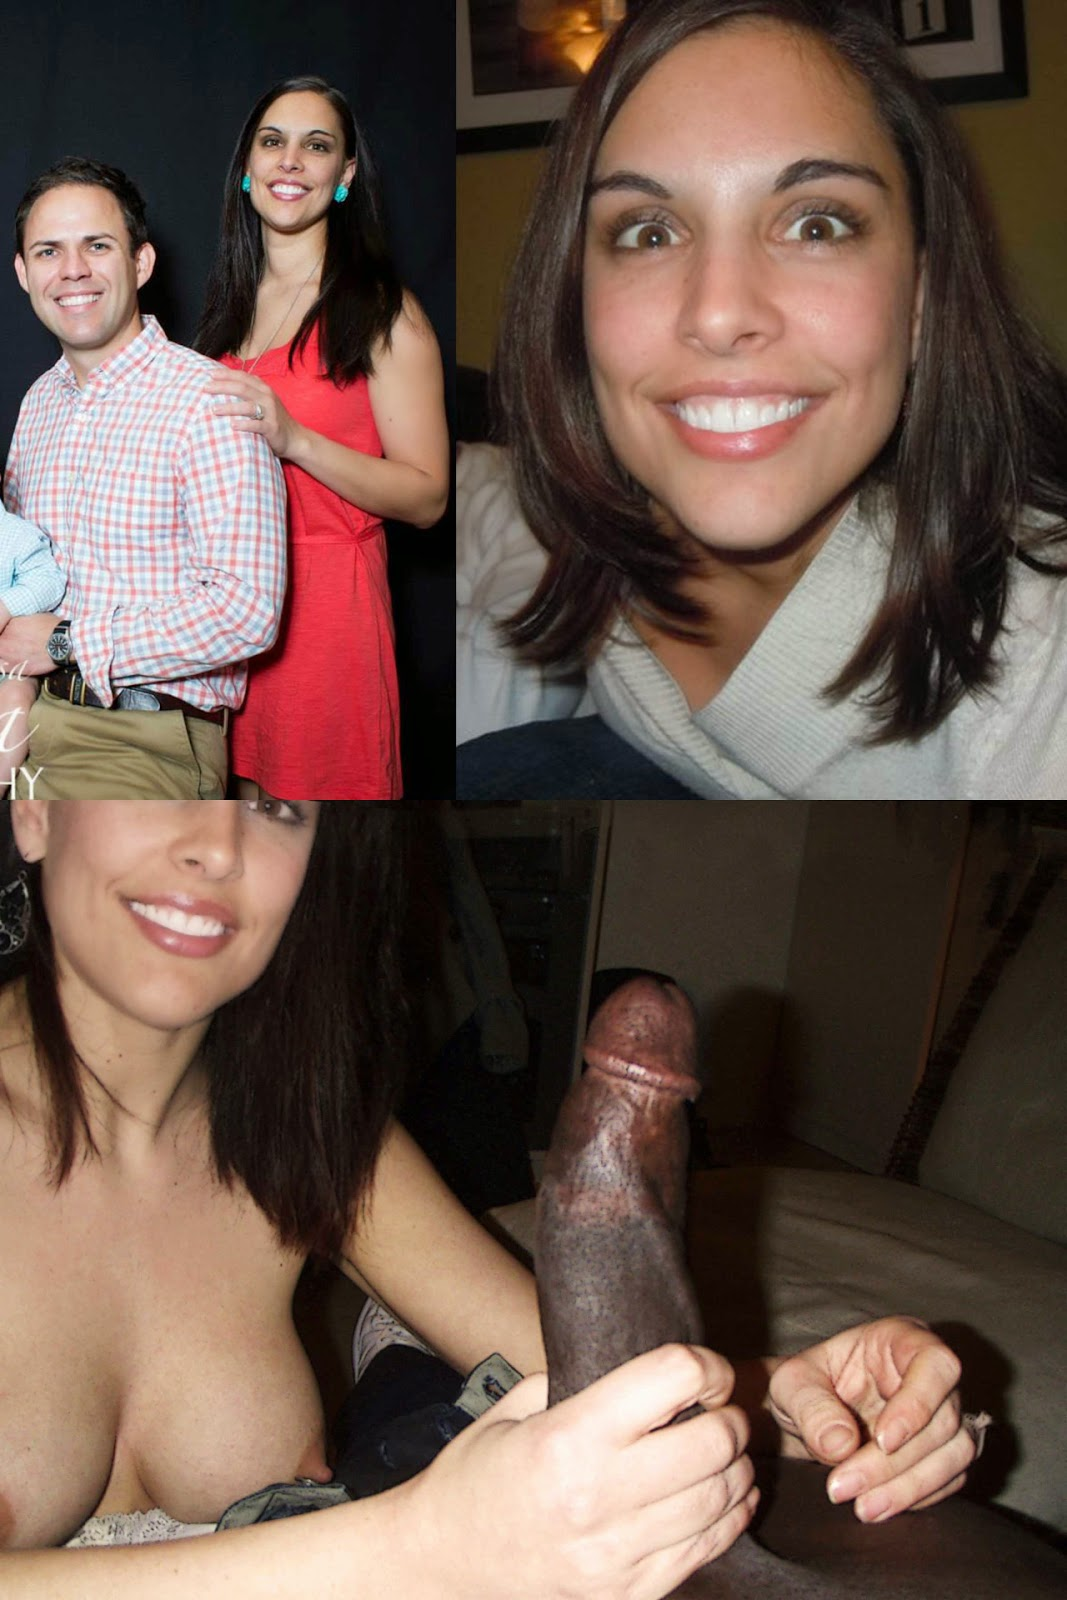 Theme simply Cuckold shared before after consider